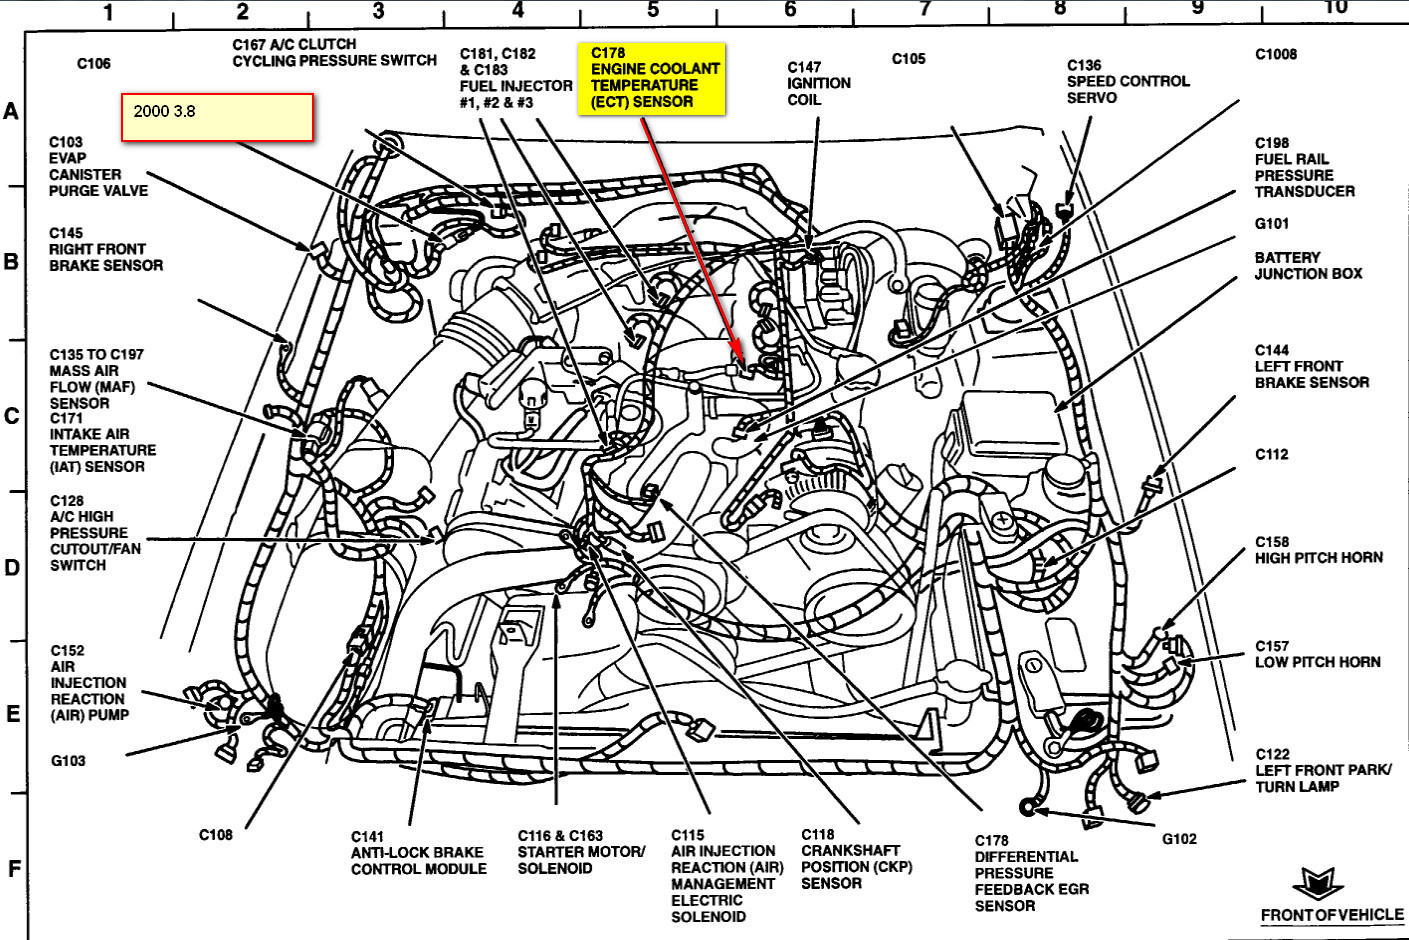 1998 Ford Mustang V6 Engine Diagram Archive Of Automotive Wiring 99 Schematics Rh Thyl Co Uk